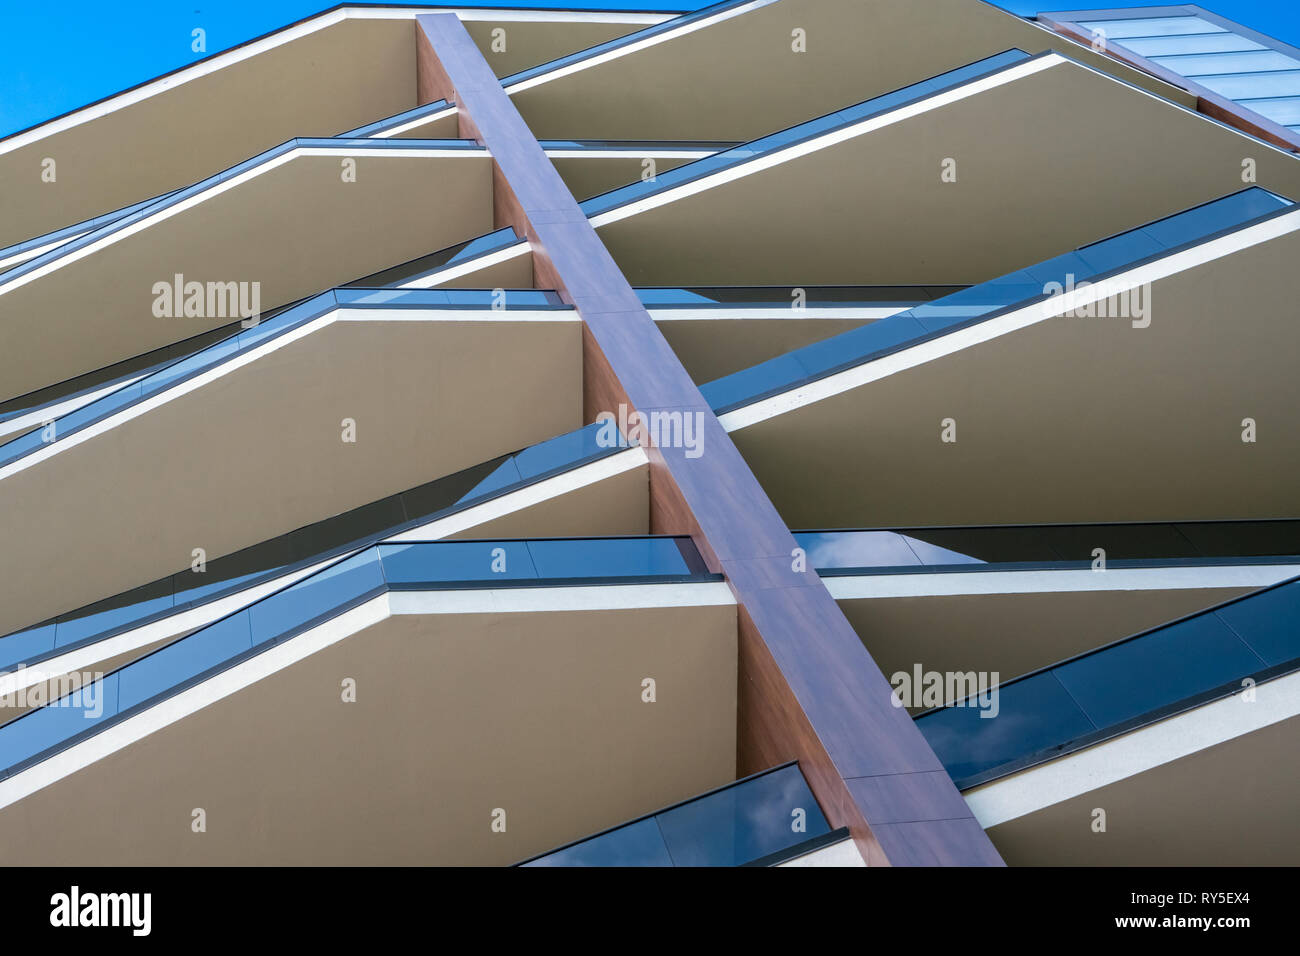 Modern building. Modern office building with facade of glass. Modern highrise skyscraper steel and glass architecture. Office building exterior Stock Photo